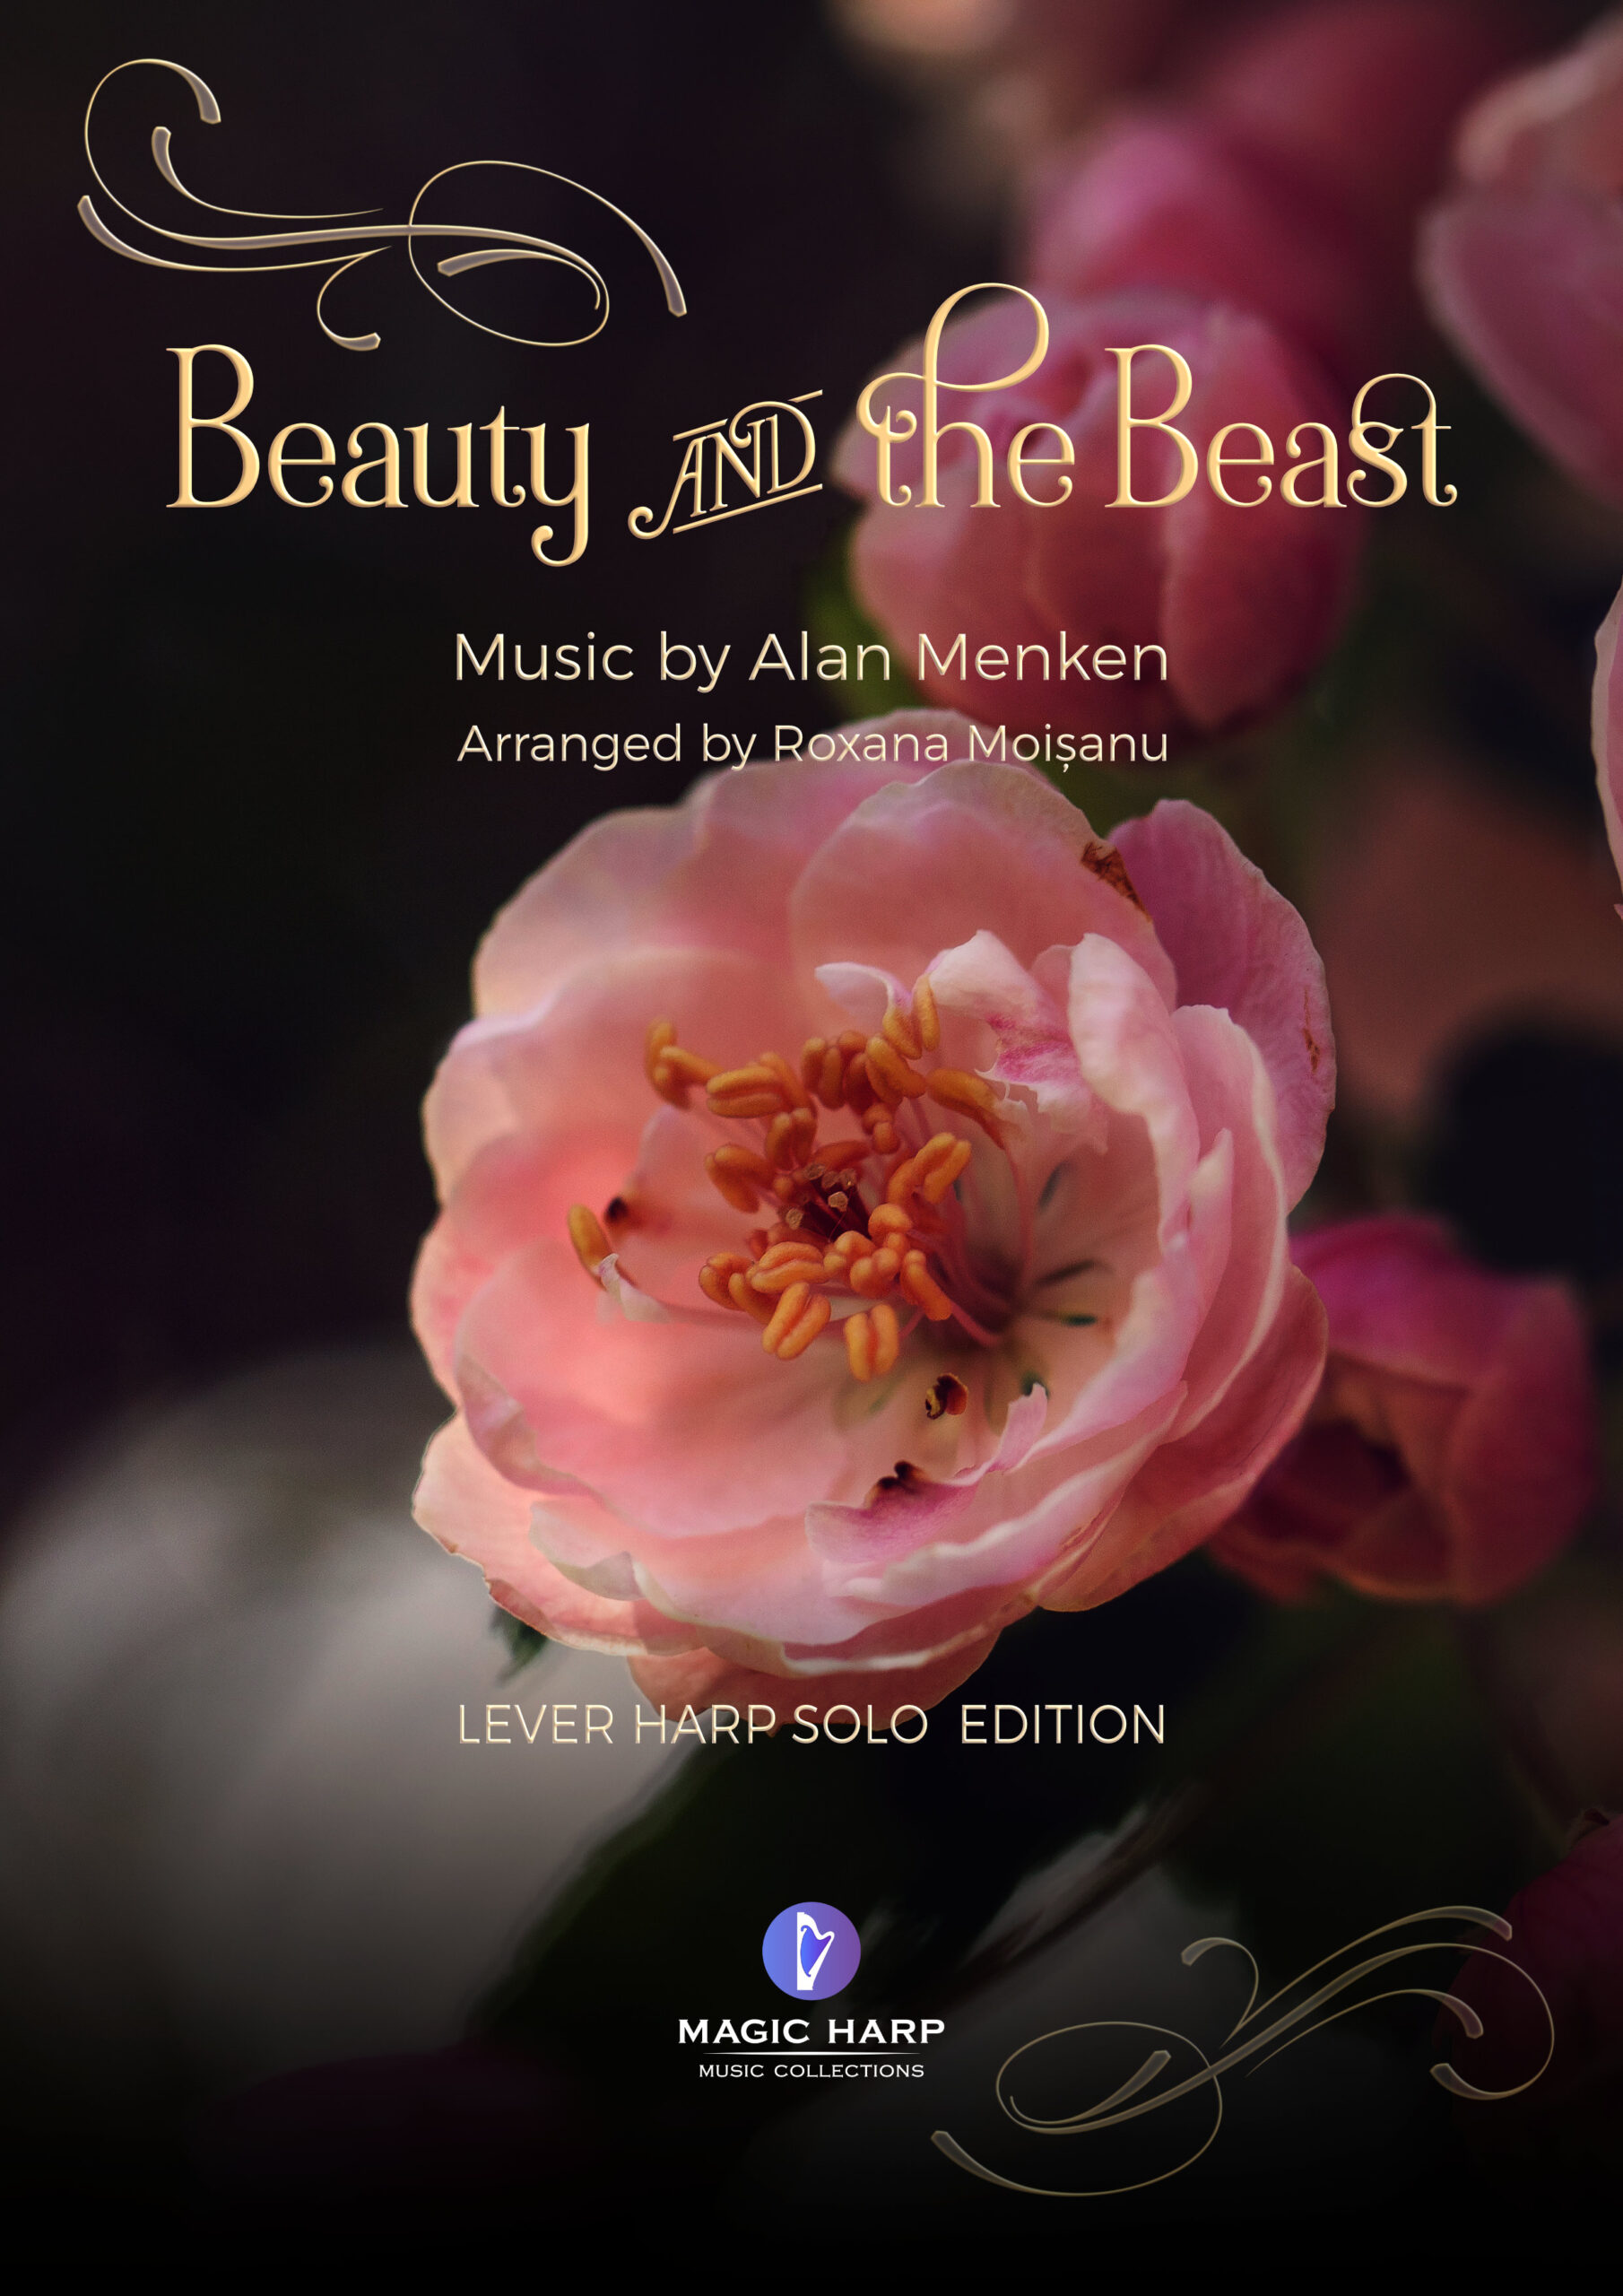 Beauty and the beast cover by Roxana Moisanu - LEVER HARP SOLO EDITION